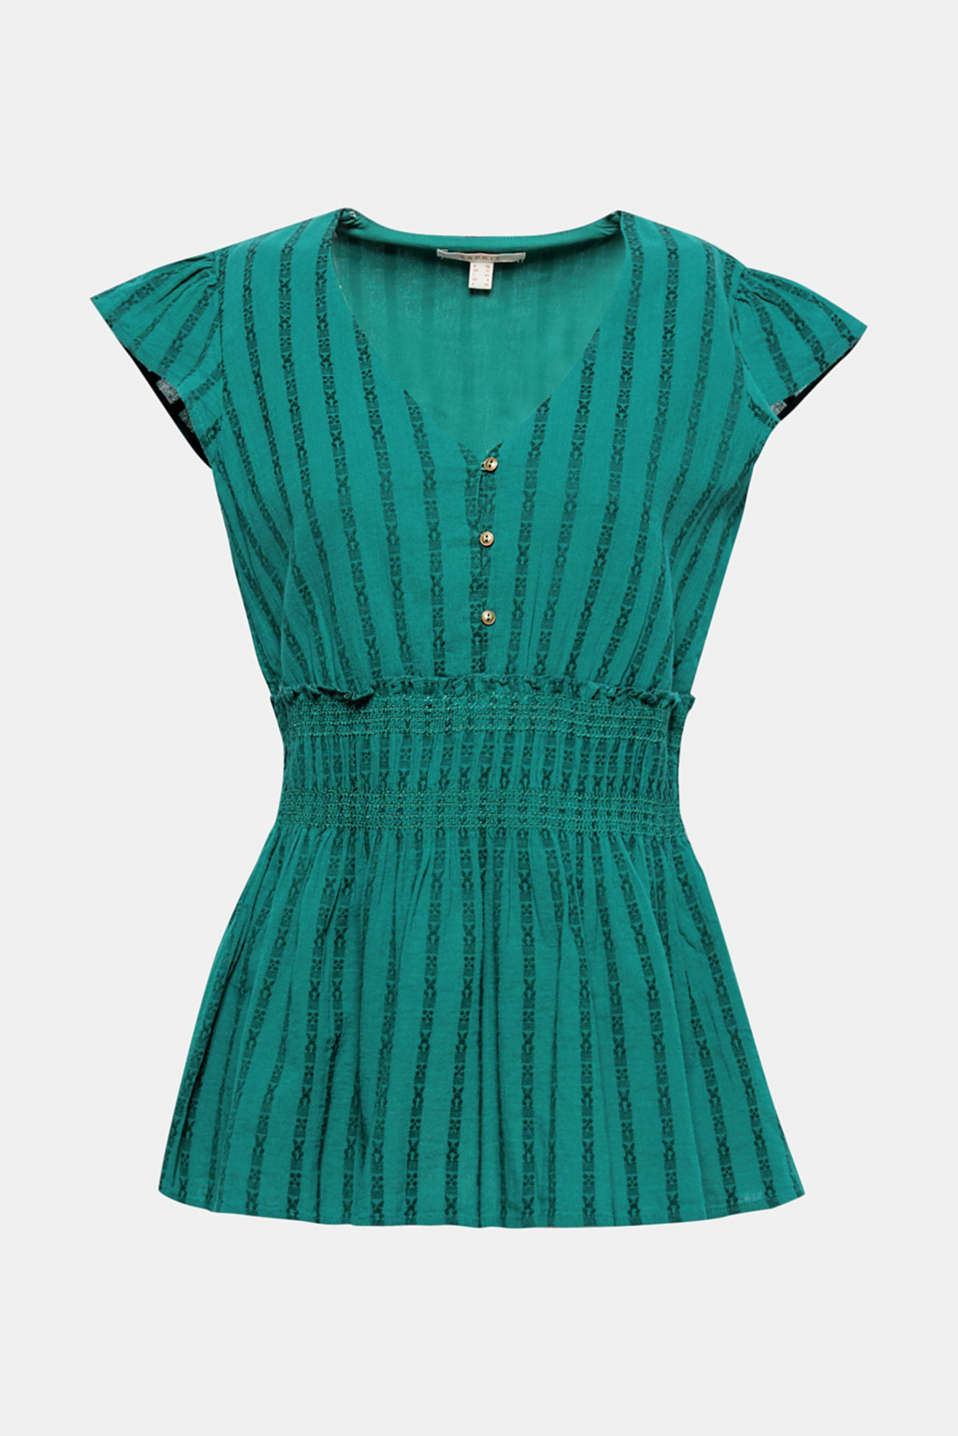 Decorative jacquard stripes, a smocked waist and swinging peplum give this blouse top its romantic flair!